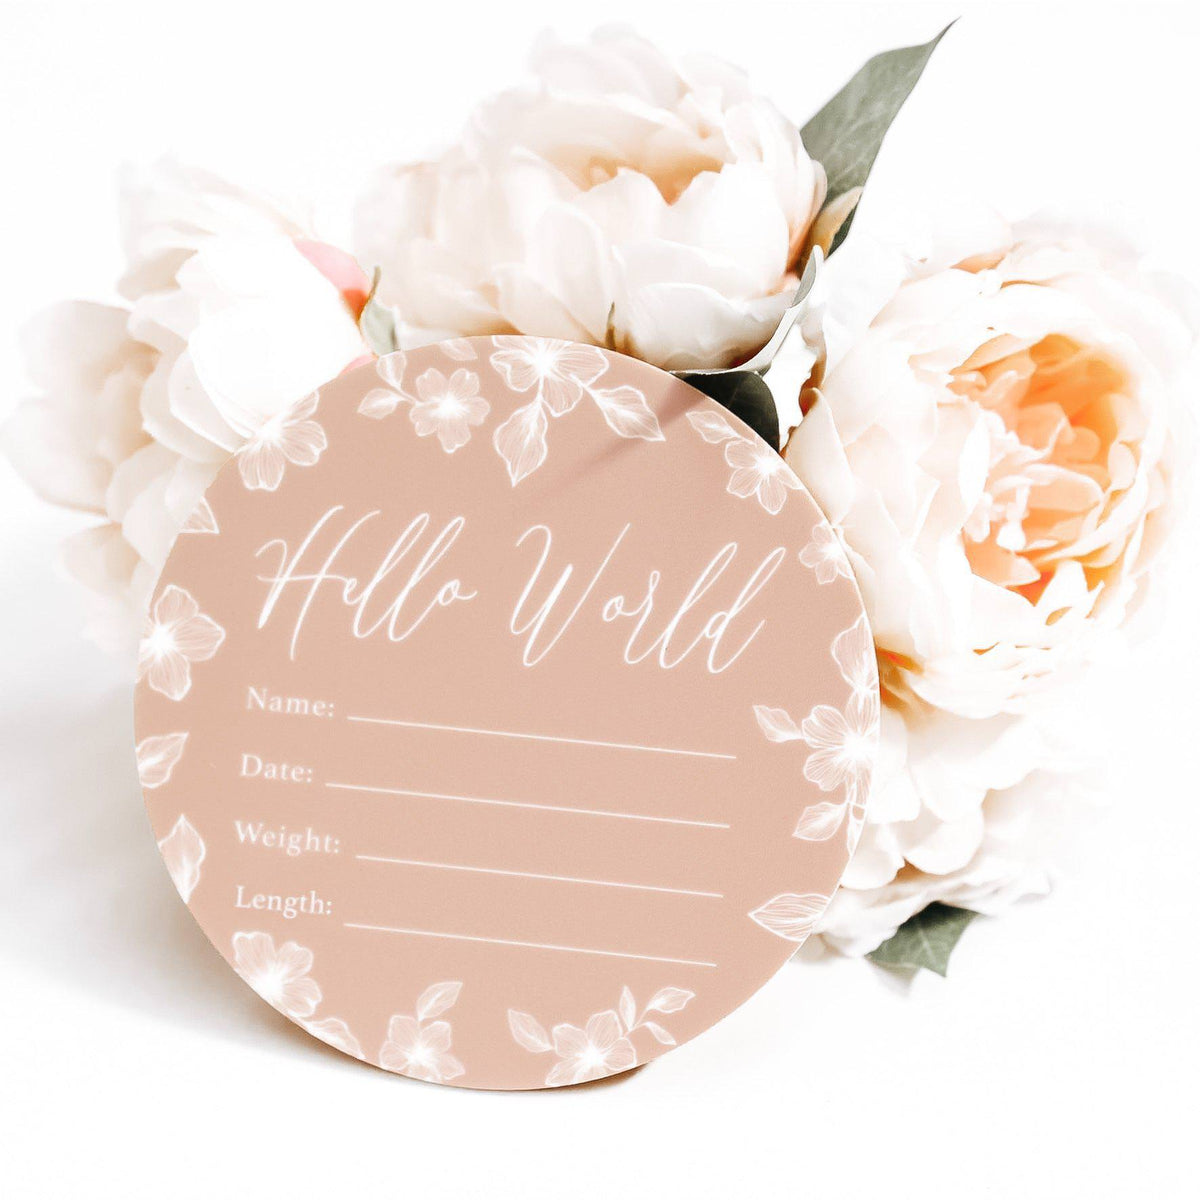 Birth Announcement Card - Hello World Full Colour Acrylic Print